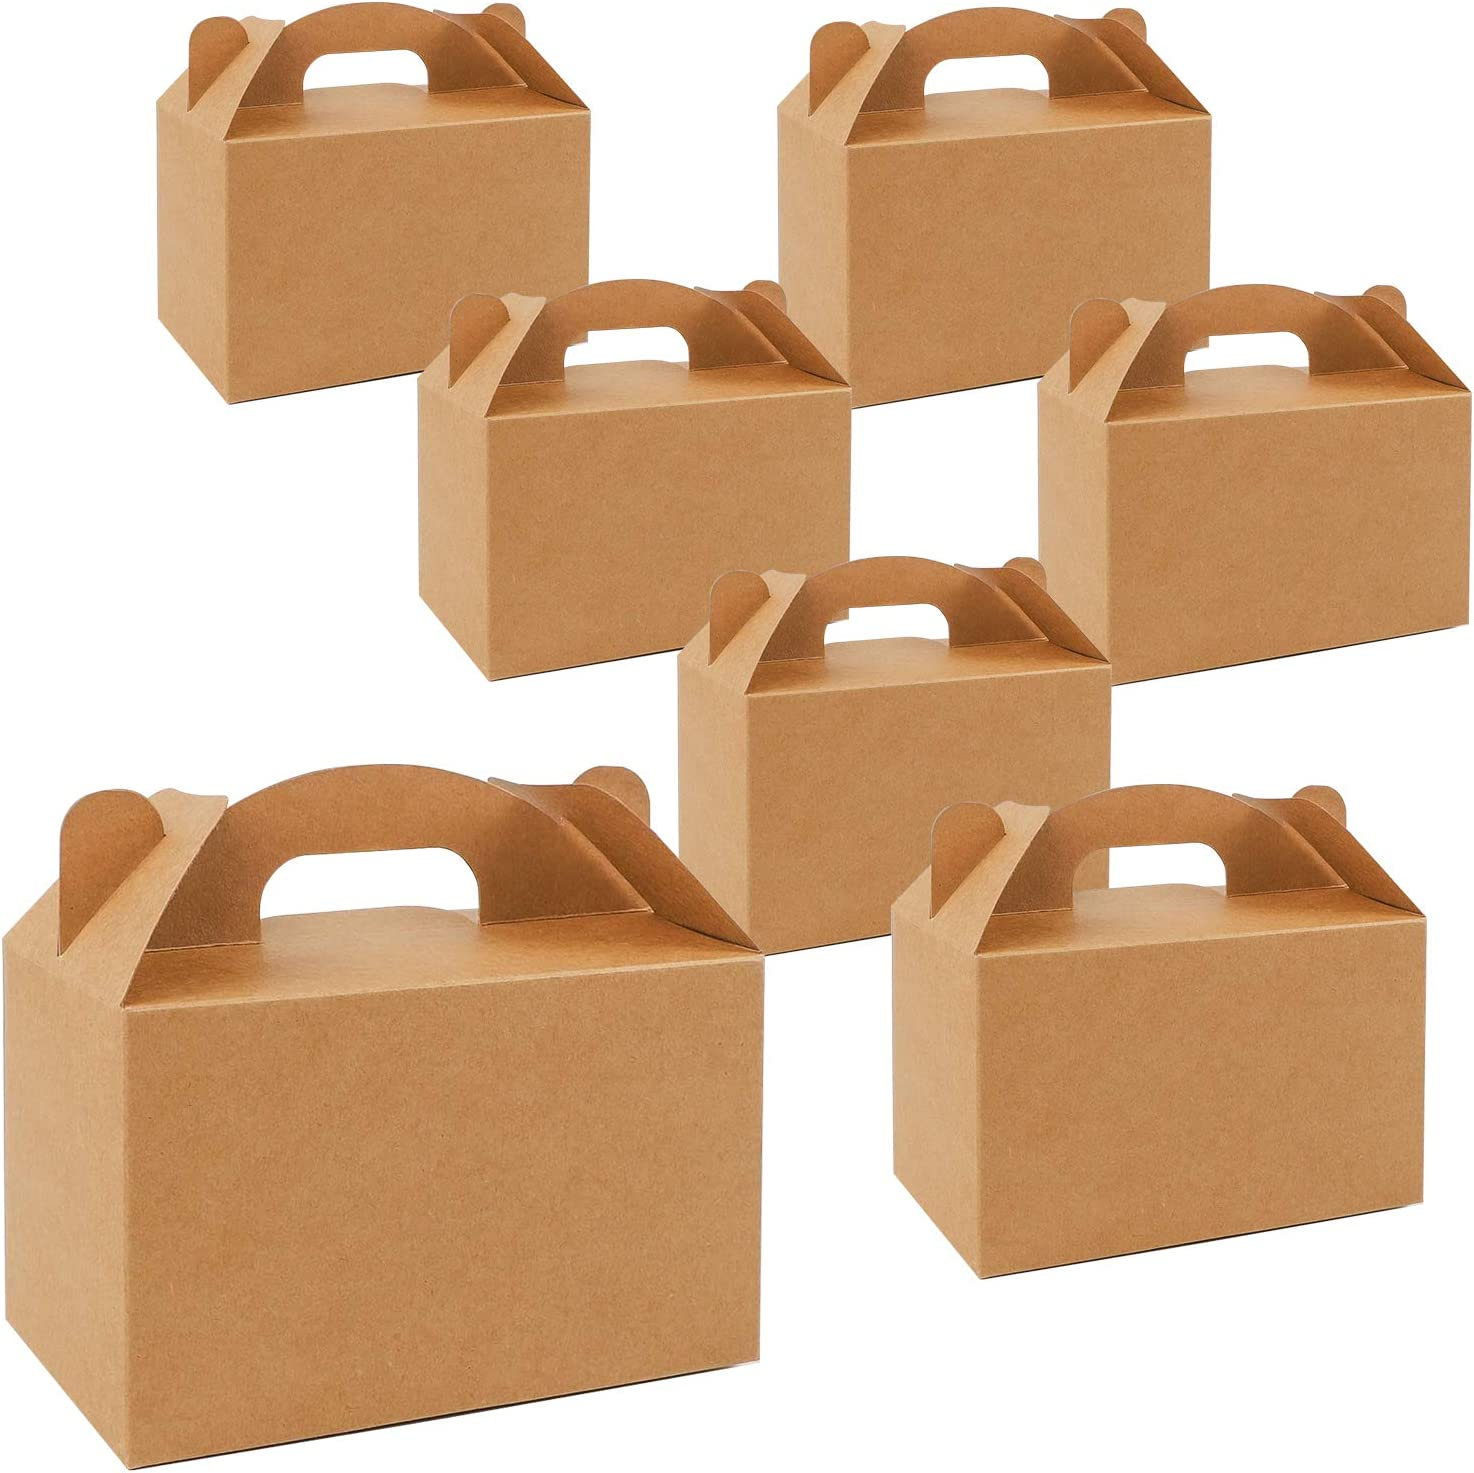 Baby Shower 6.5x3.3x3.6 inches NICEWAY 30 Pack Brown Gable Gift Boxes Recycled Kraft Gift Box Candy Treat Boxes Small Goodie Gift Boxes Treat Boxes for Wedding Birthday Party